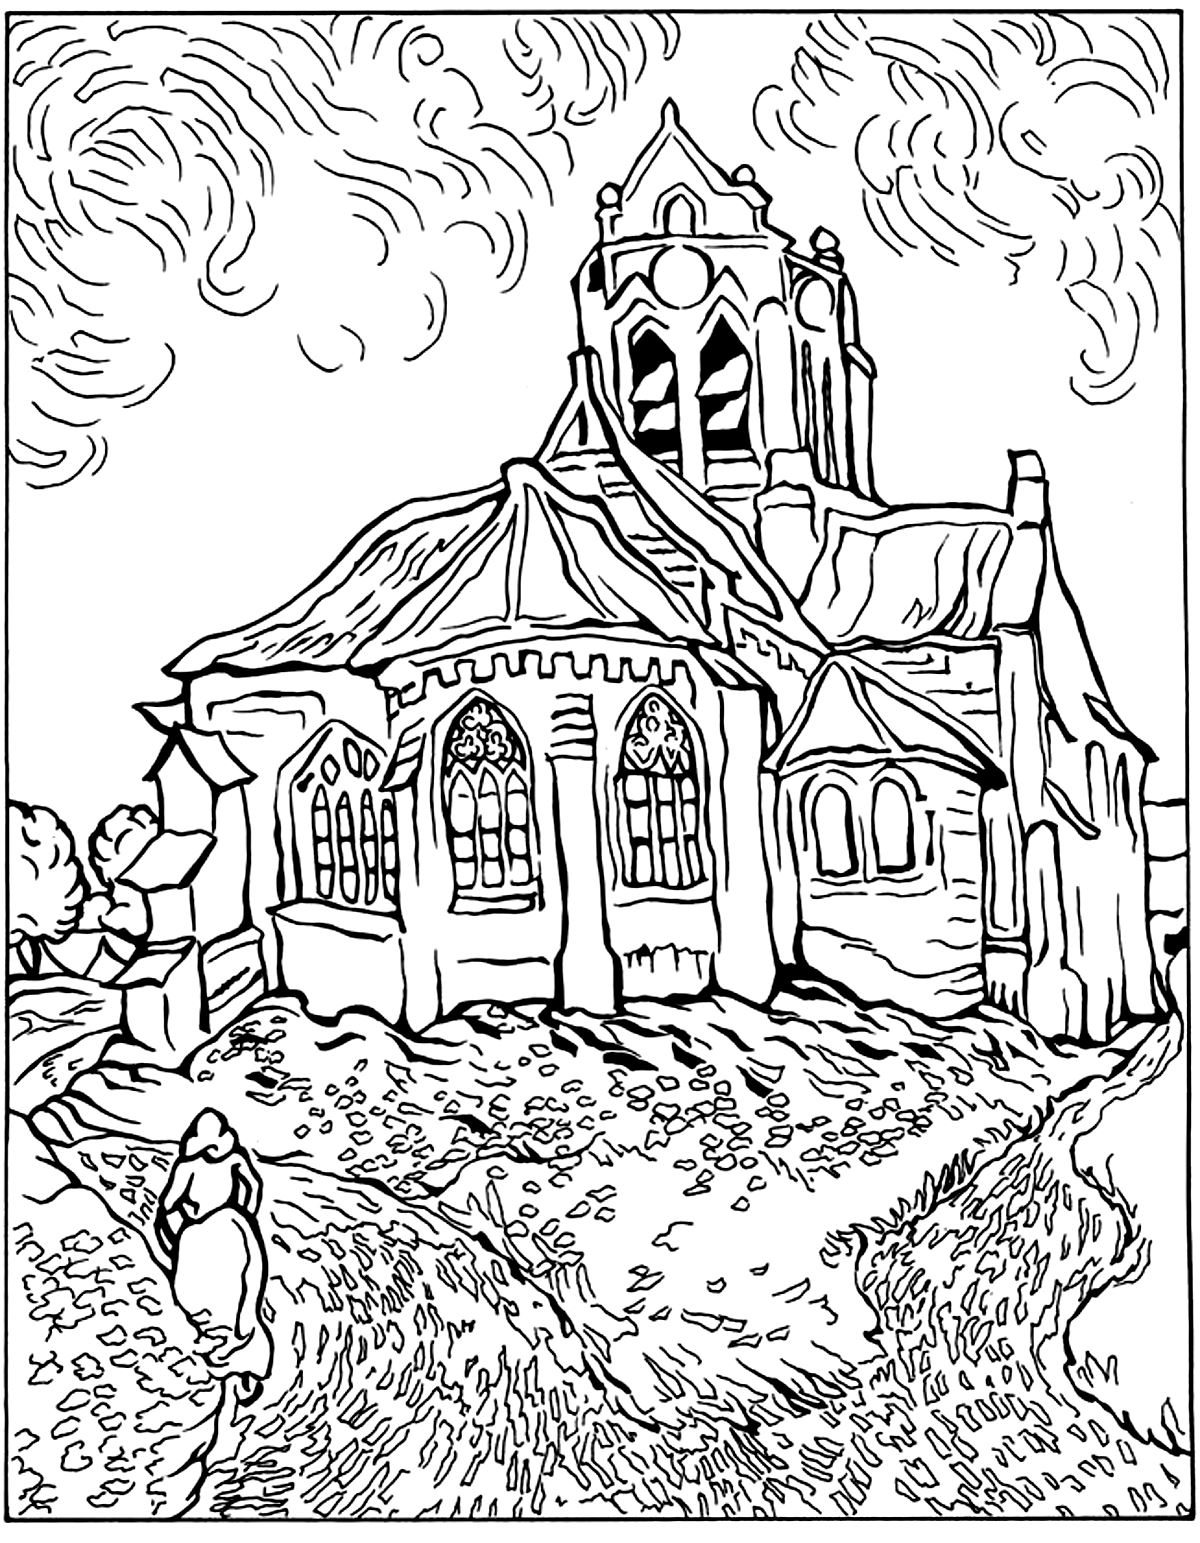 Printable coloring pages van gogh - The Church At Auvers By Vincent Van Gogh 1890 From The Gallery Art Print